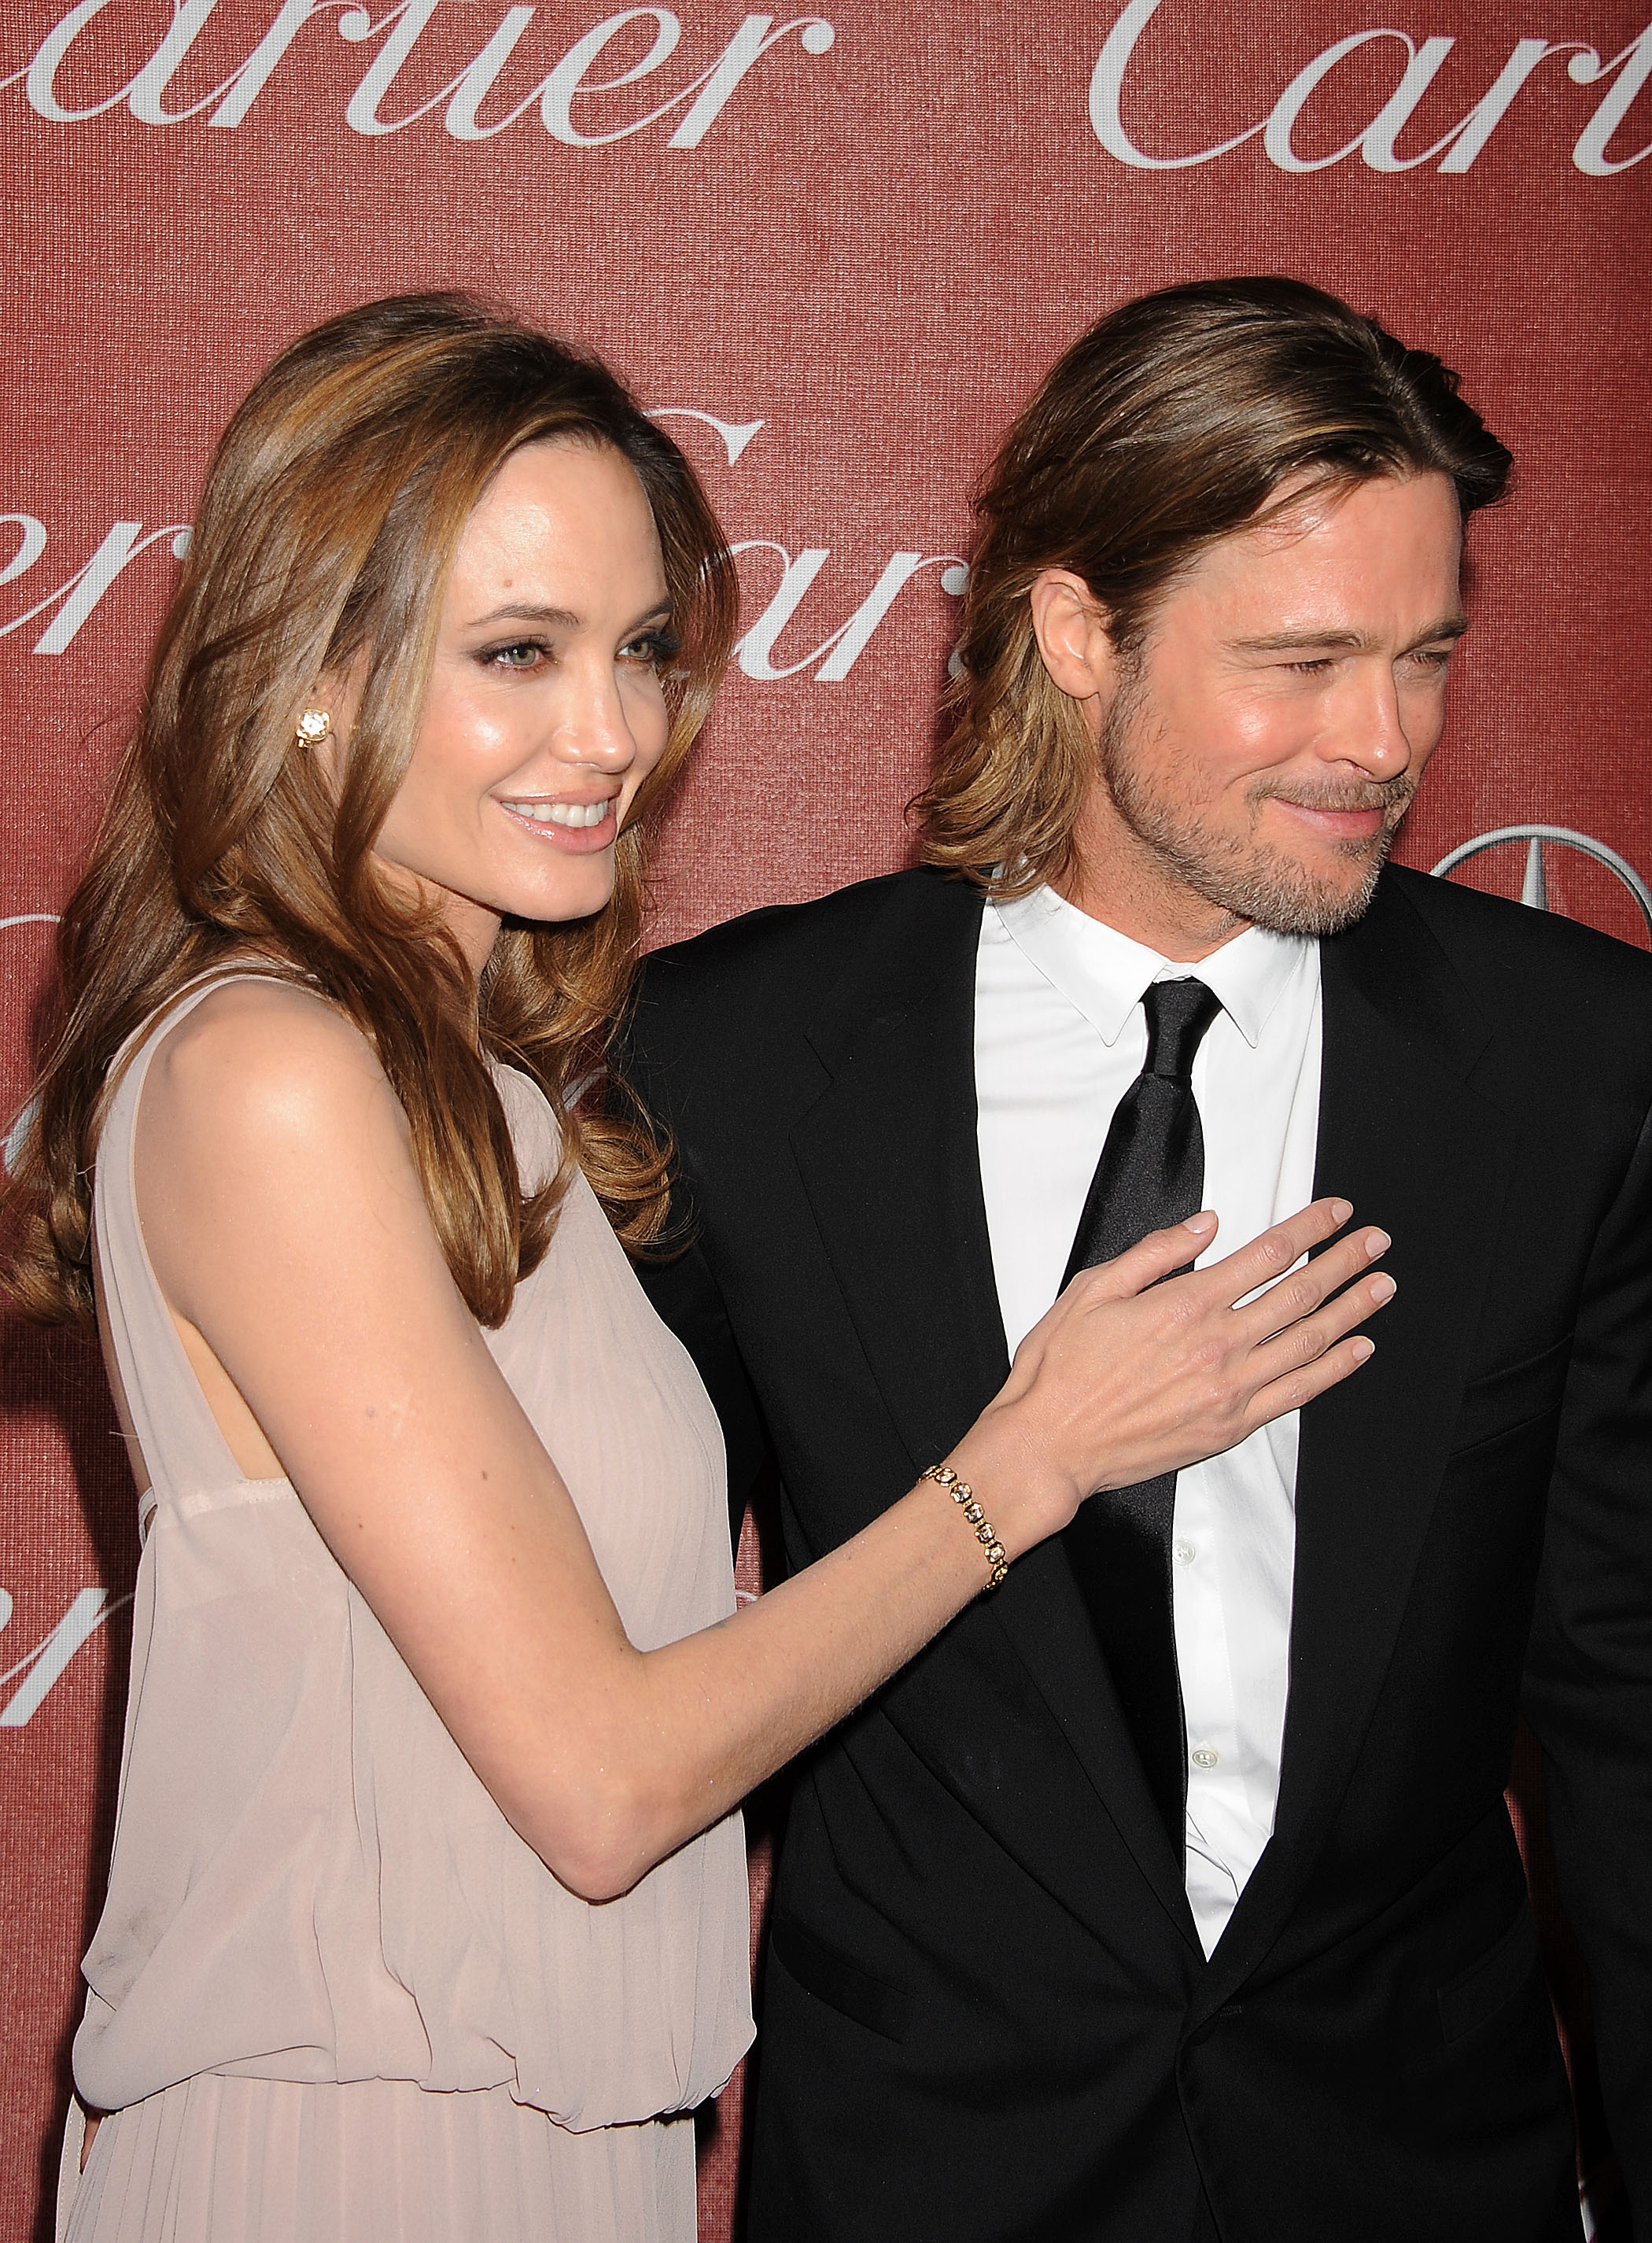 Angelina Jolie joined Brad Pitt at the January 2010 Palm Springs Film Festival Awards.